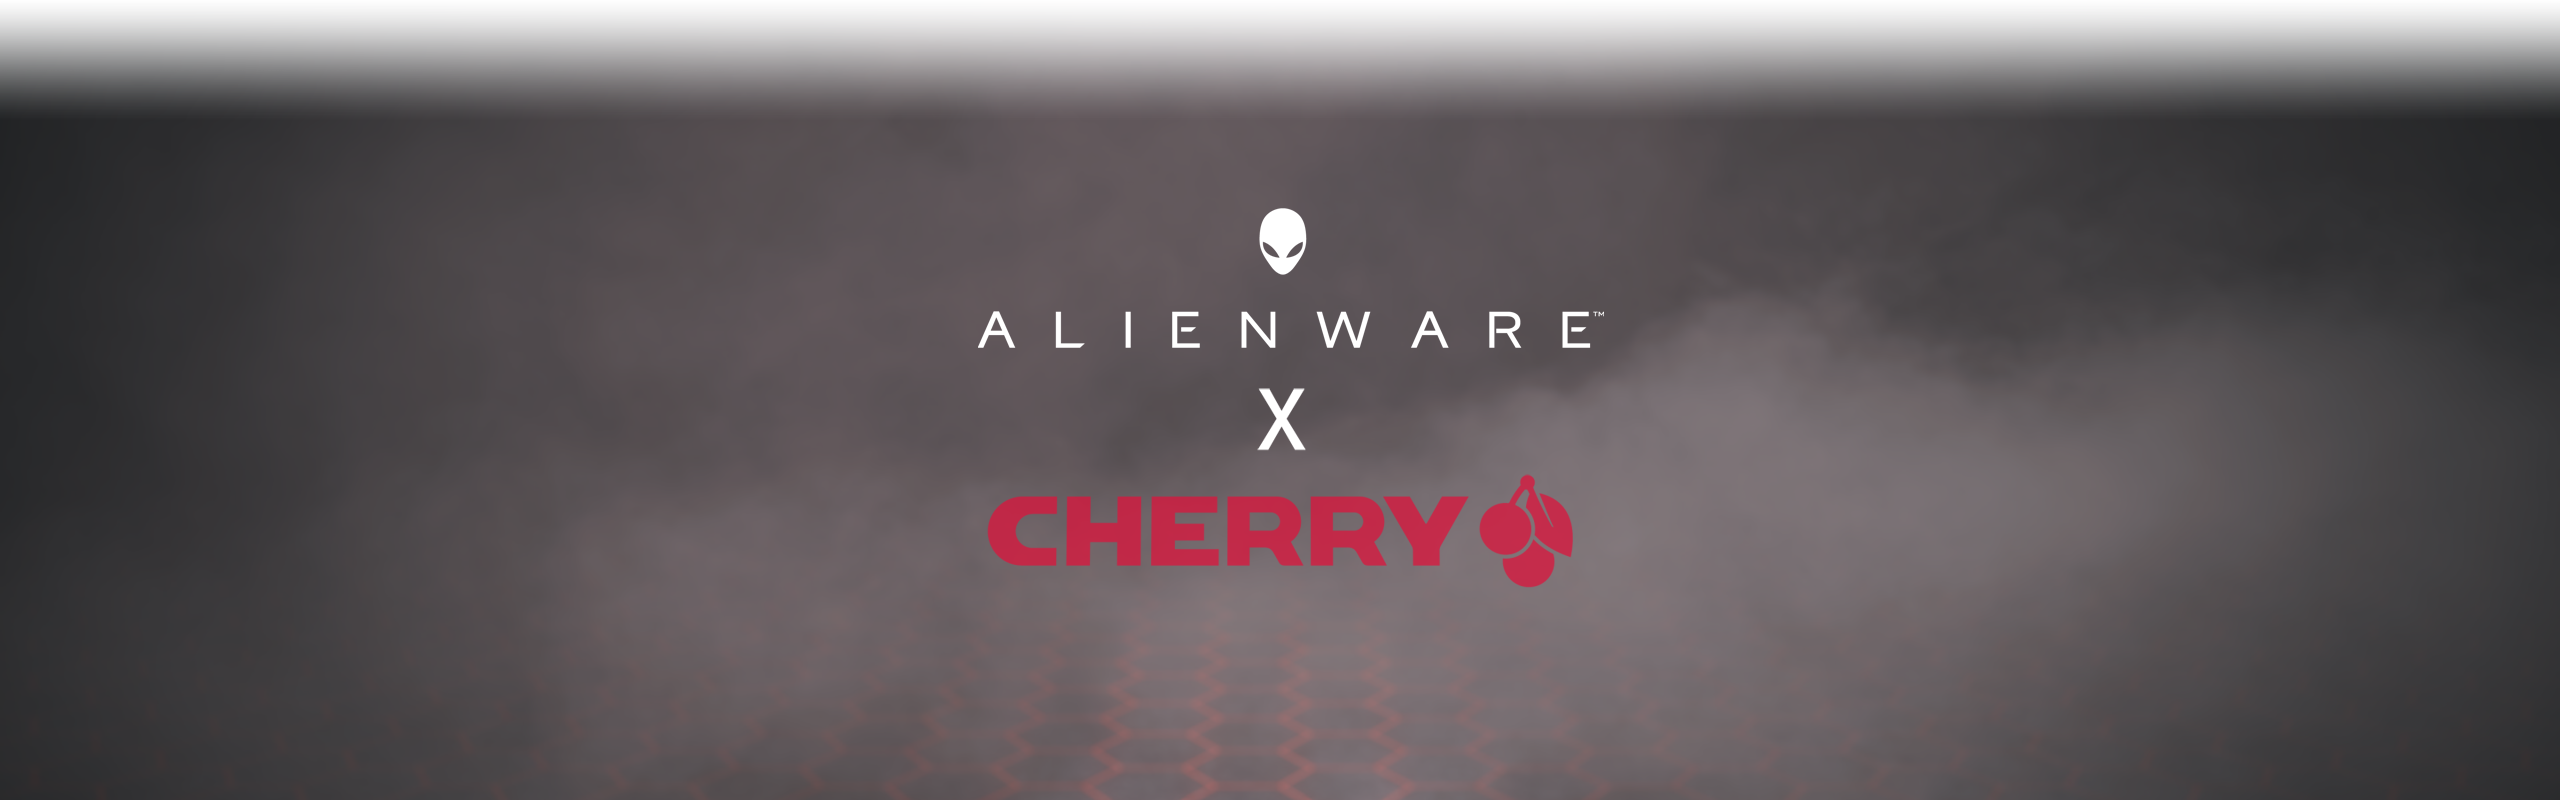 Alienware Debuts the World's First Gaming Laptop with CHERRY MX Ultra-Low Profile Mechanical Keys